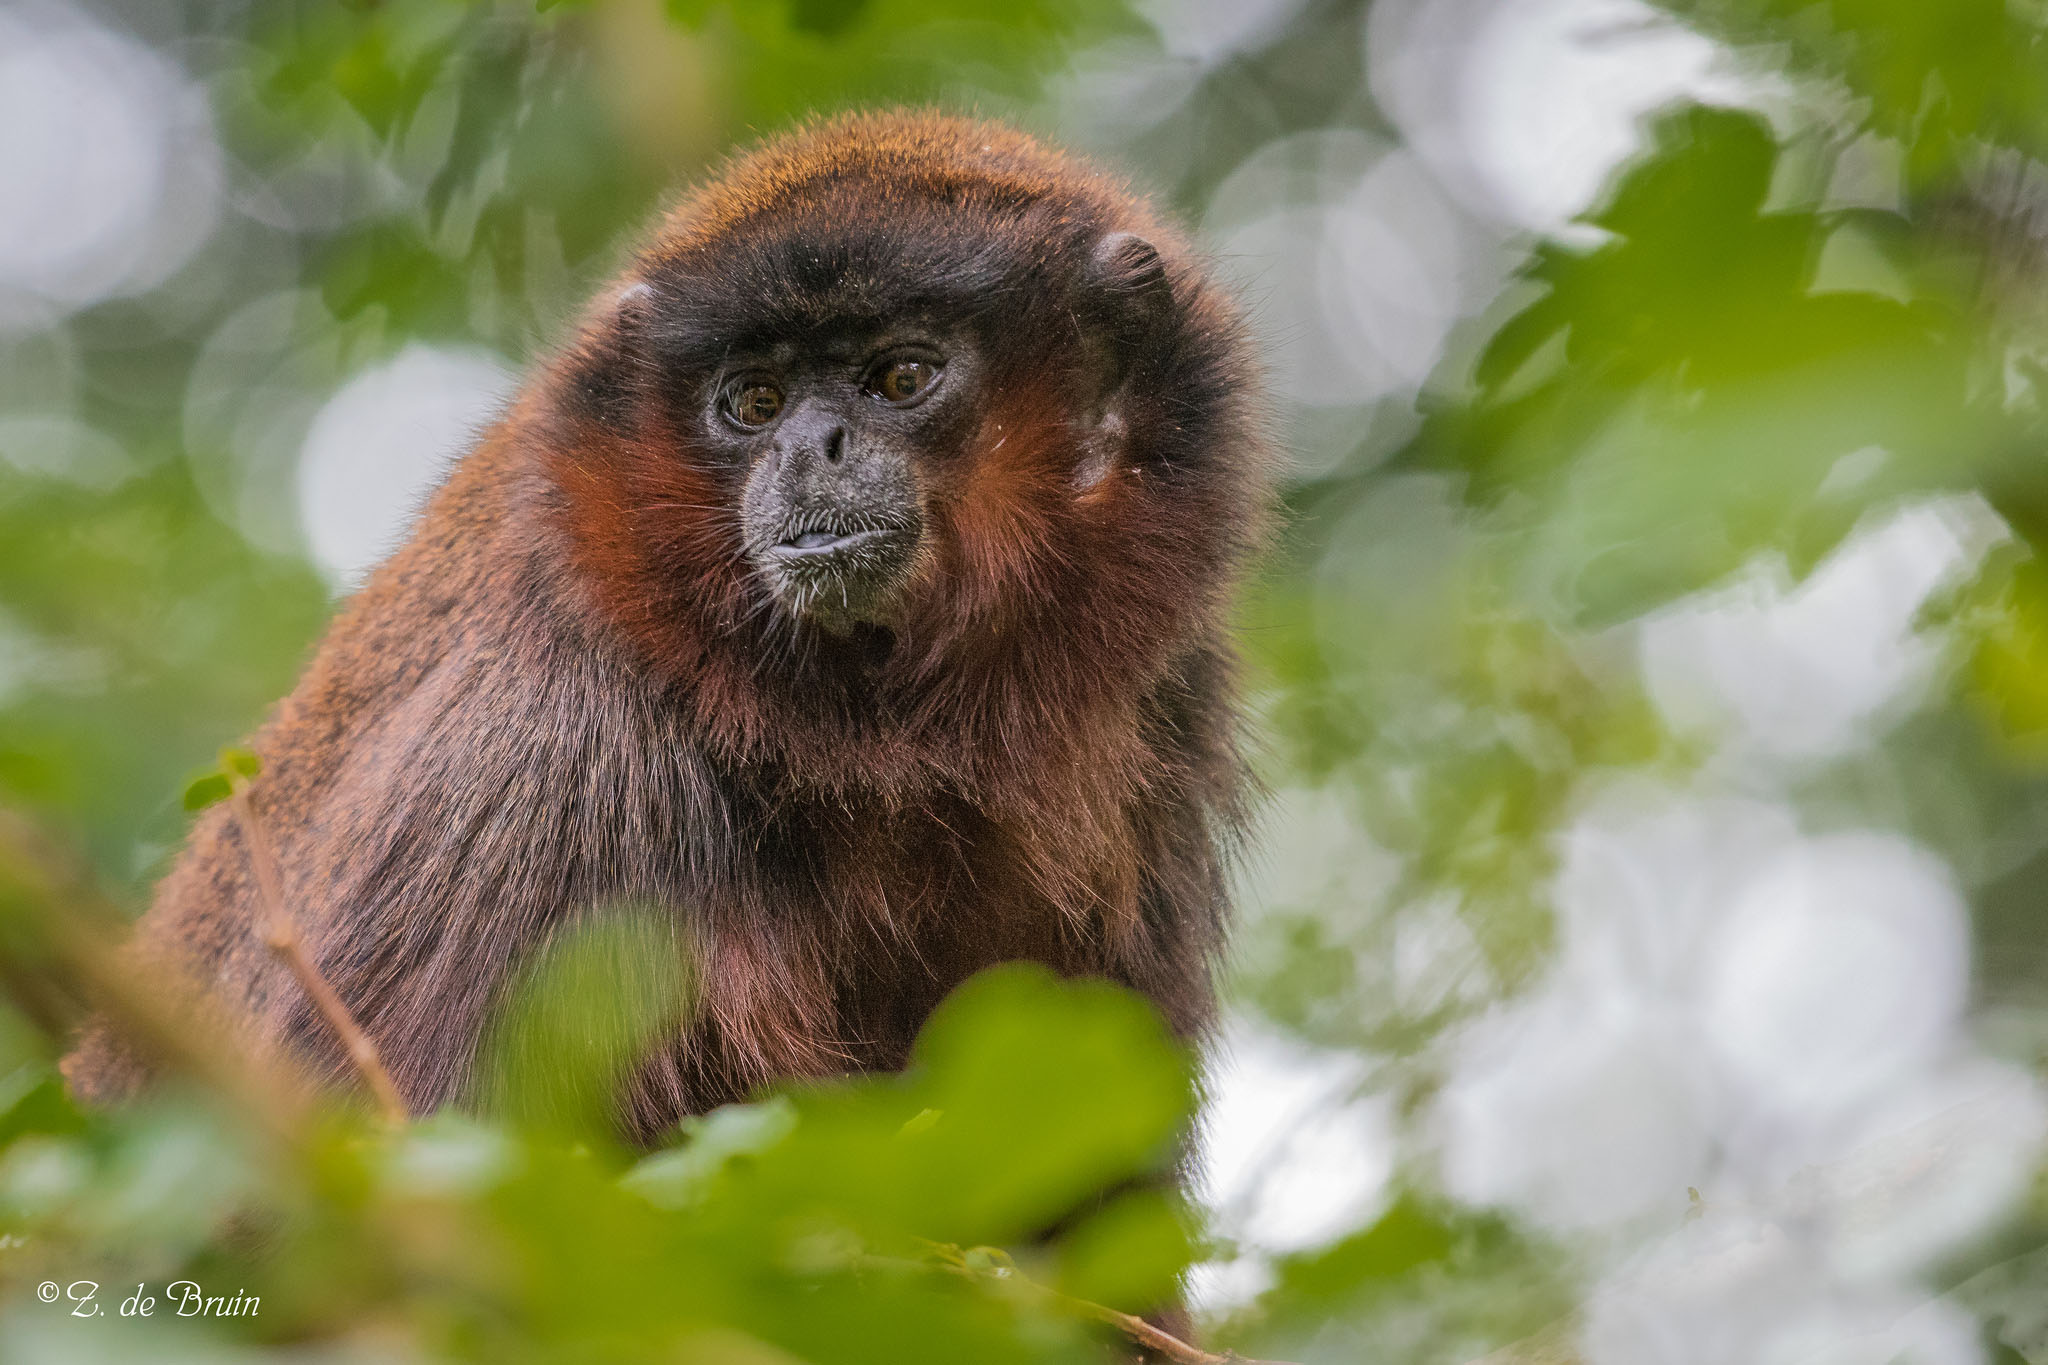 Scientists used coppery titi monkeys as test subjects in their experiments about the neurobiology of jealousy. Photo by Zweer de Bruin (Flickr)